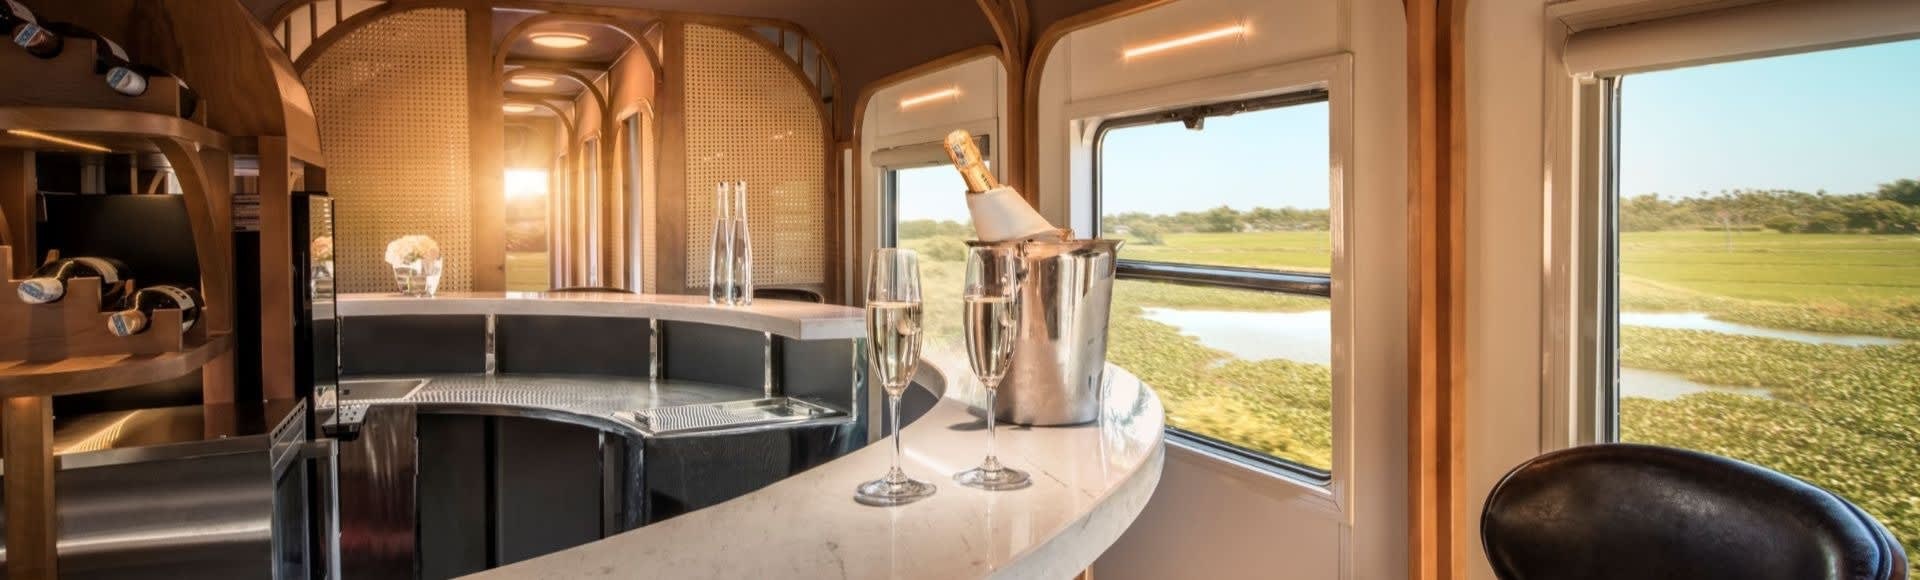 The Vietage luxury train journey with stunning countryside views